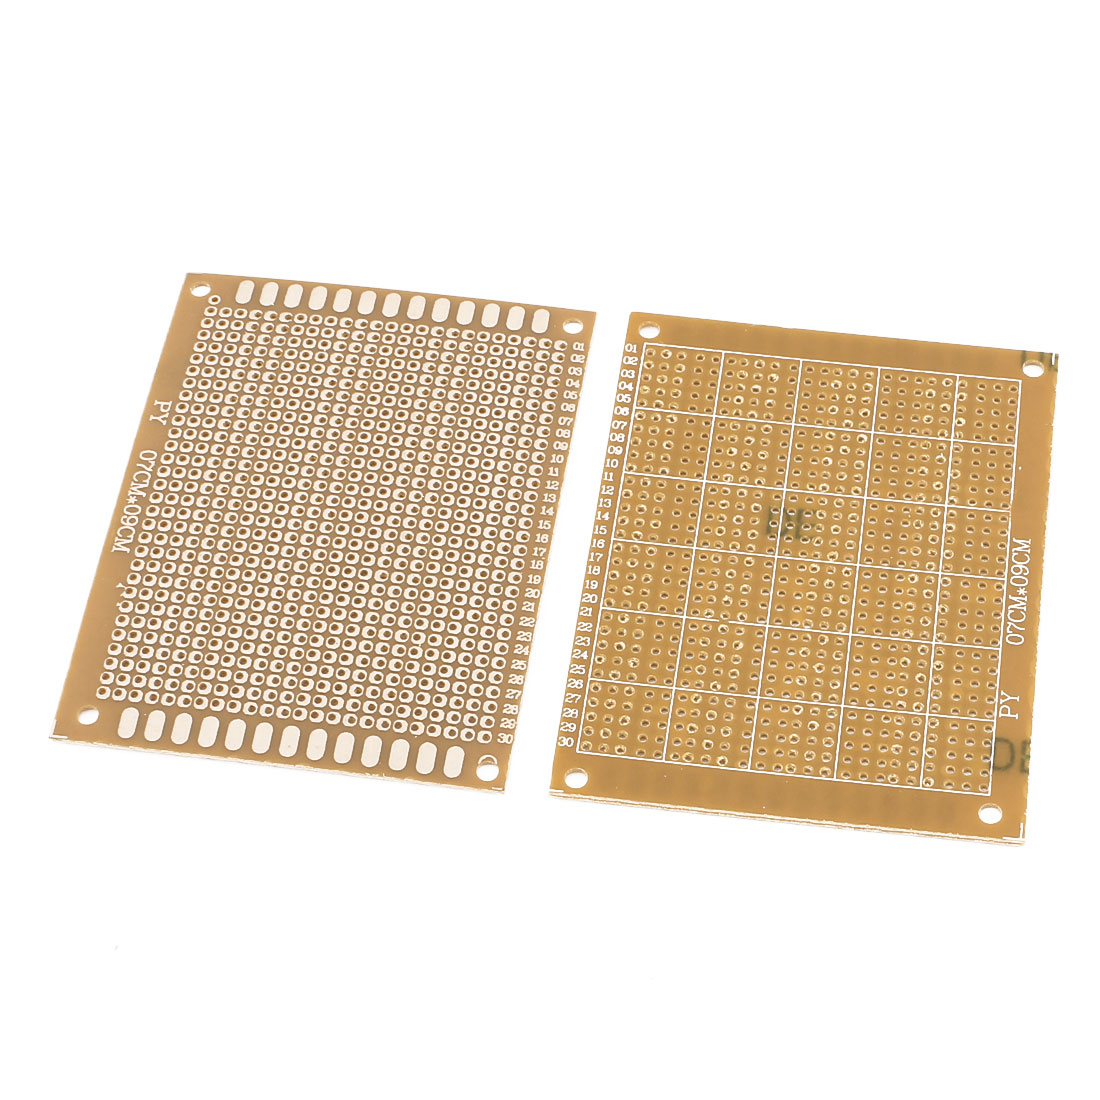 2 Pcs Single Sided Prototype Solderable Paper Universal PCB Board 9x7cm